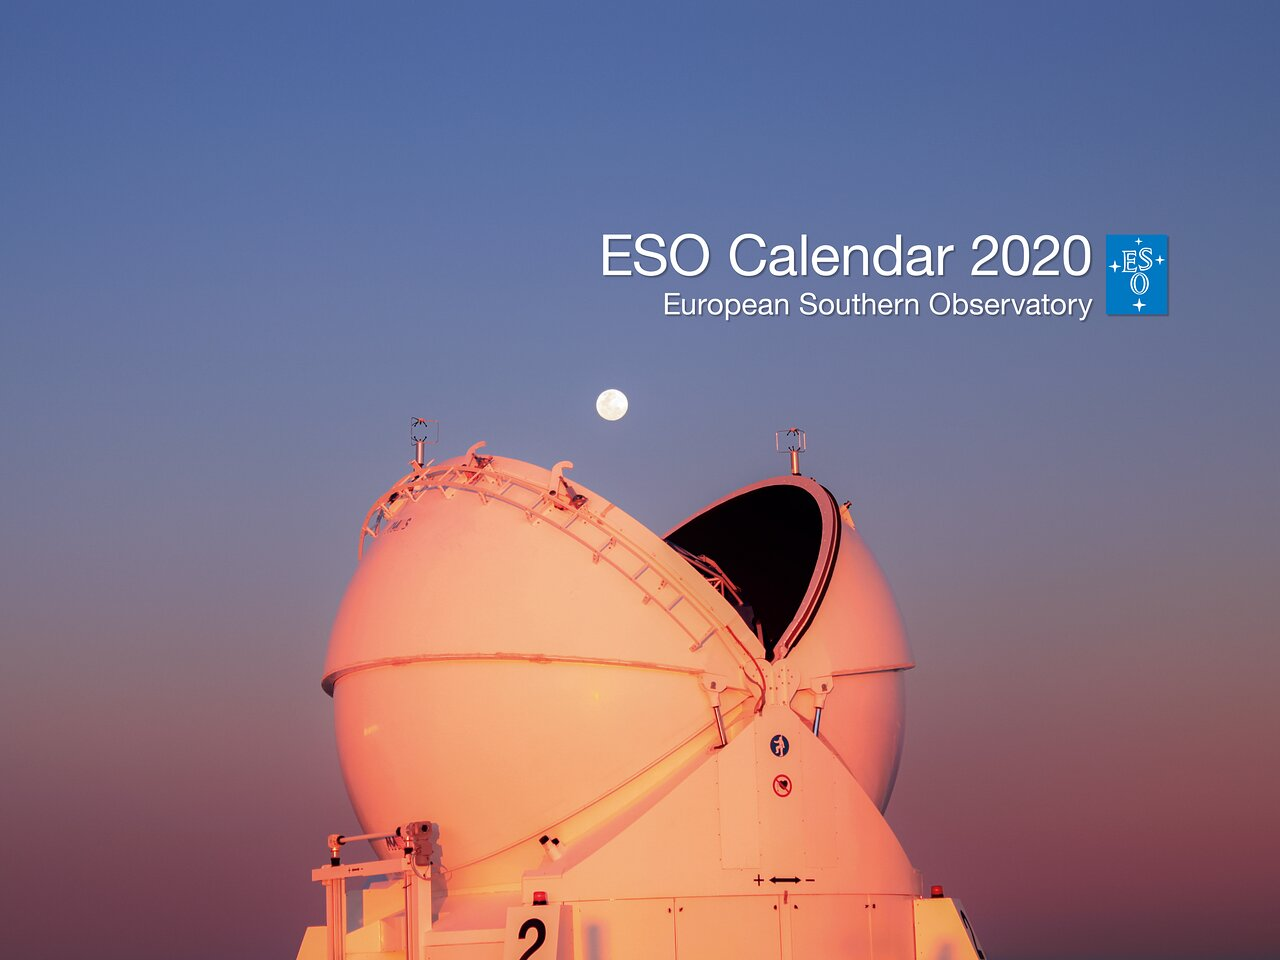 Eso Best Class 2020.Enjoy Each Day Of 2020 With The Eso Calendar Eso